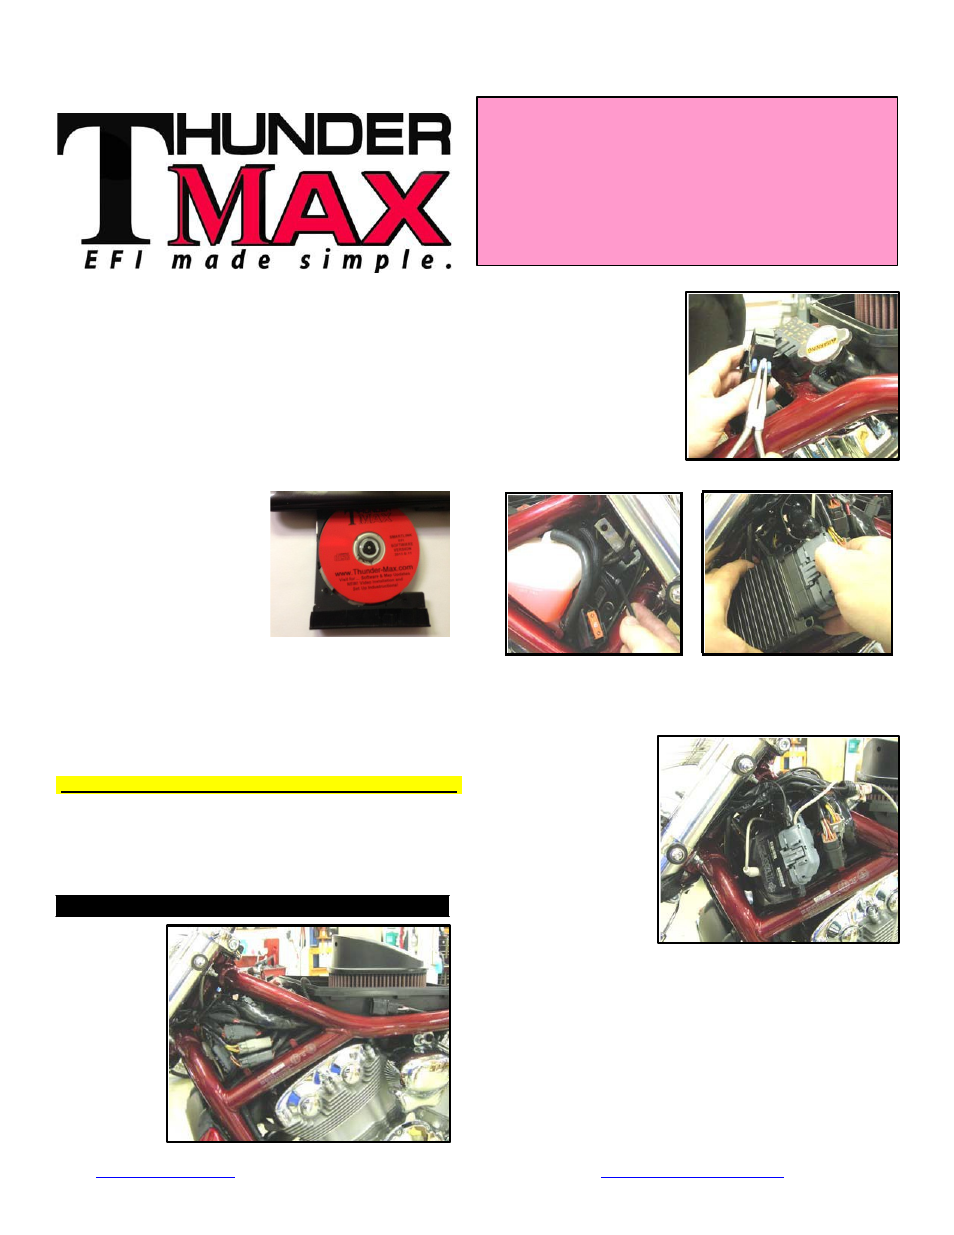 Thundermax Pn309 366 Genii V Rod User Manual 8 Pages Also For Motorcycle Fuse Box Clicking 466 364 Xr1200